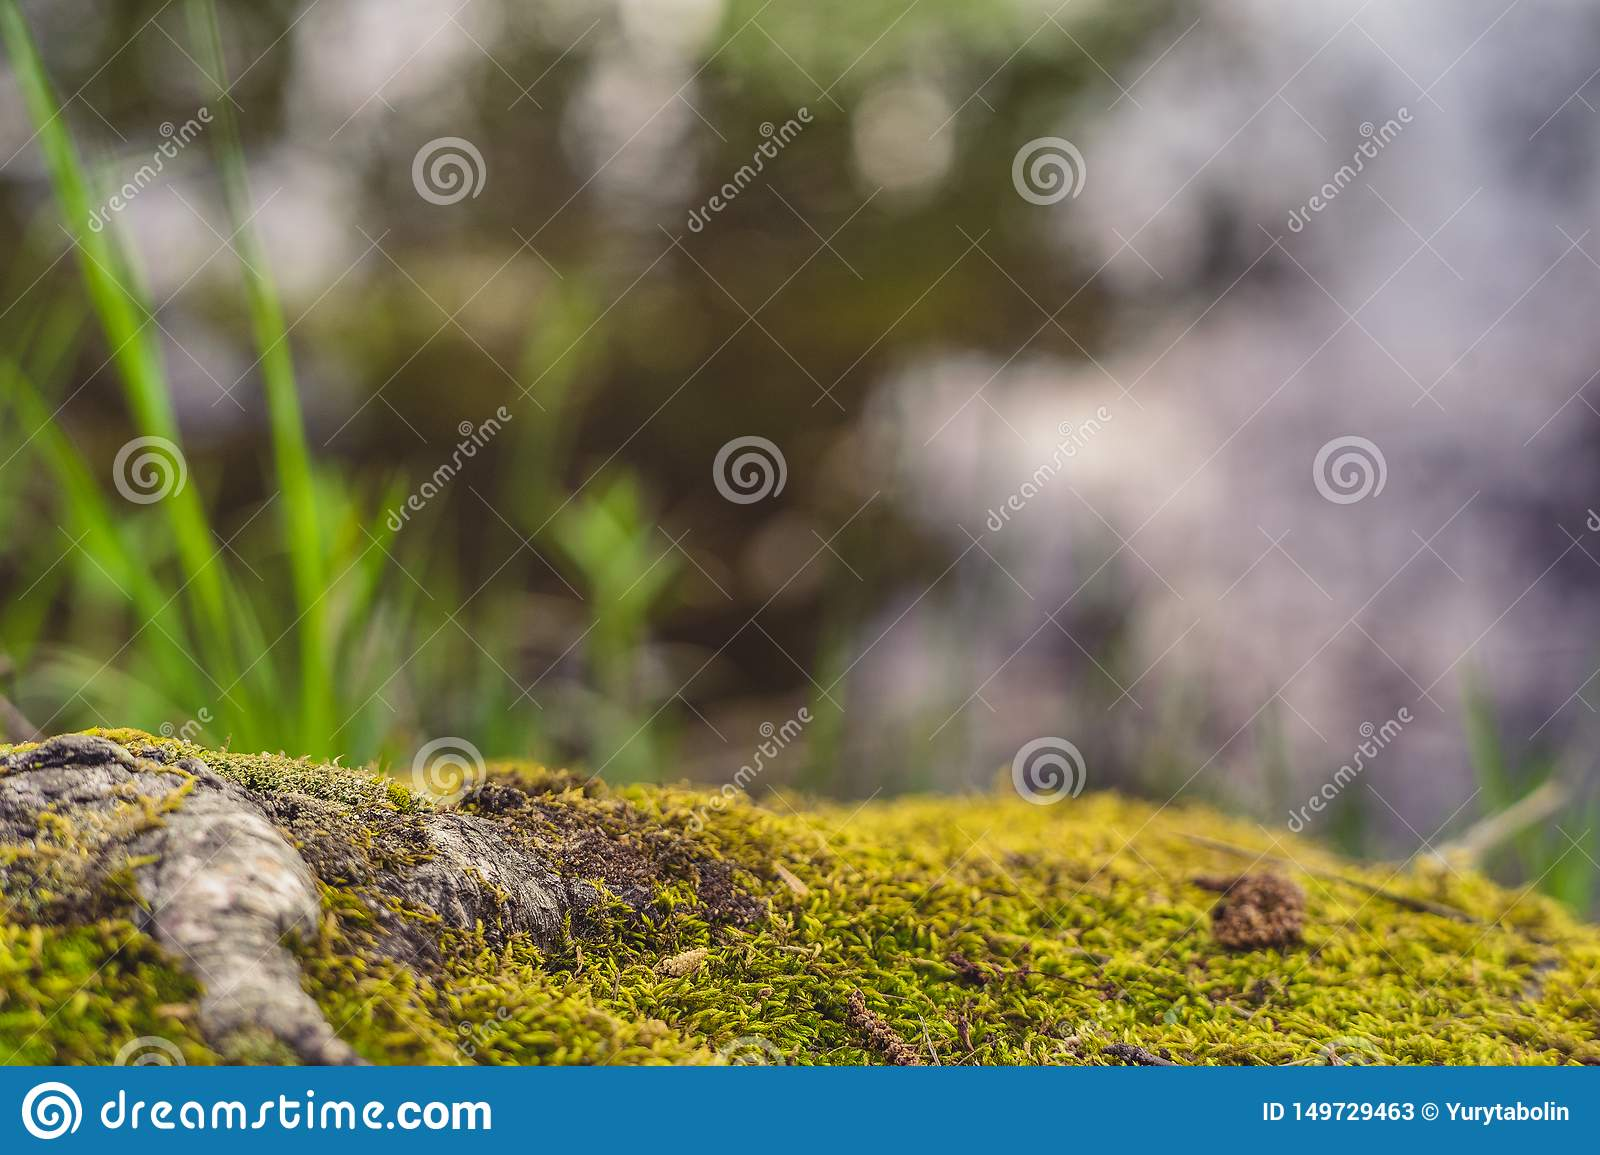 Beautiful forest background. Forest floor. Moss. Tree roots.